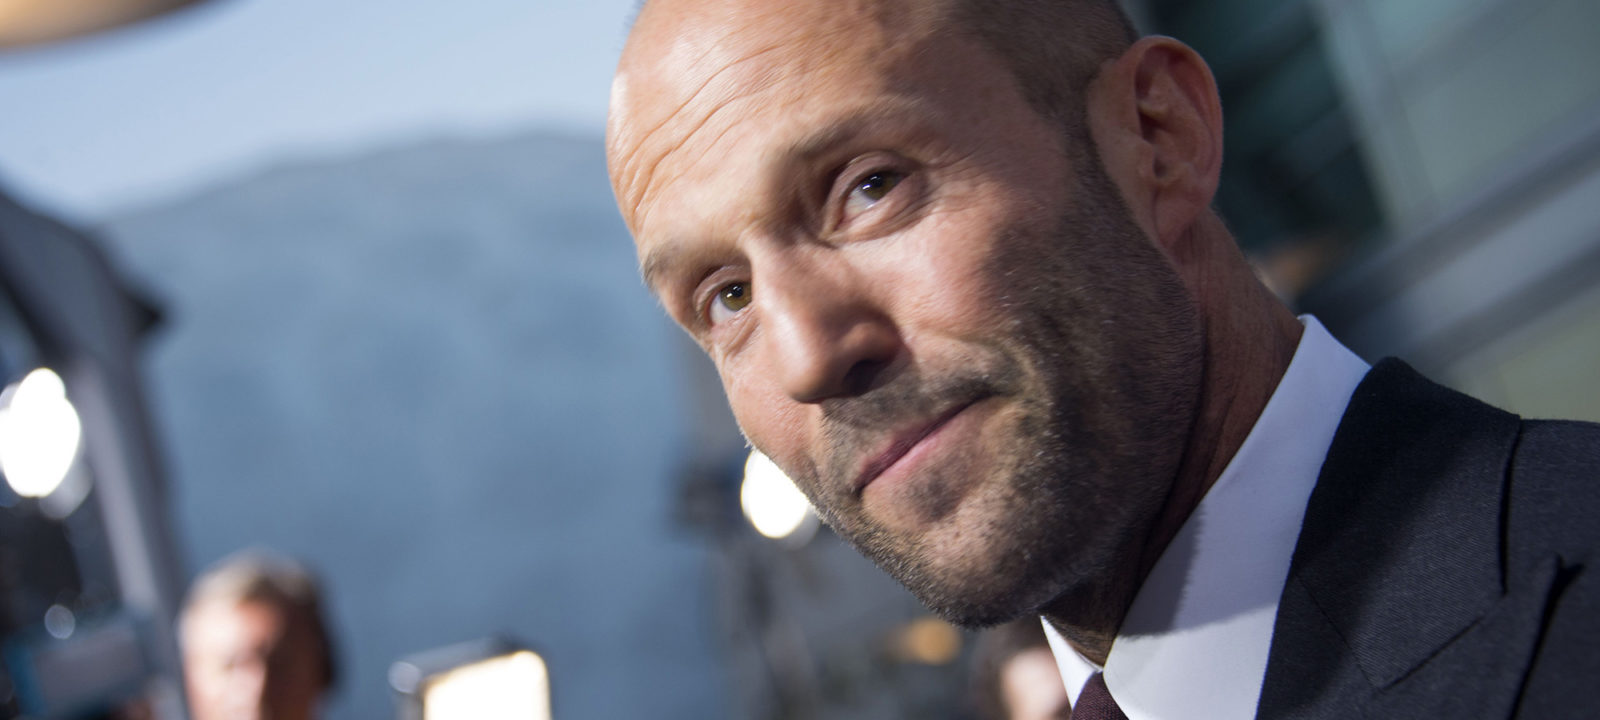 ENTERTAINMENT-US-CINEMA-PREMIERE-THE MECHANIC: RESURRECTION